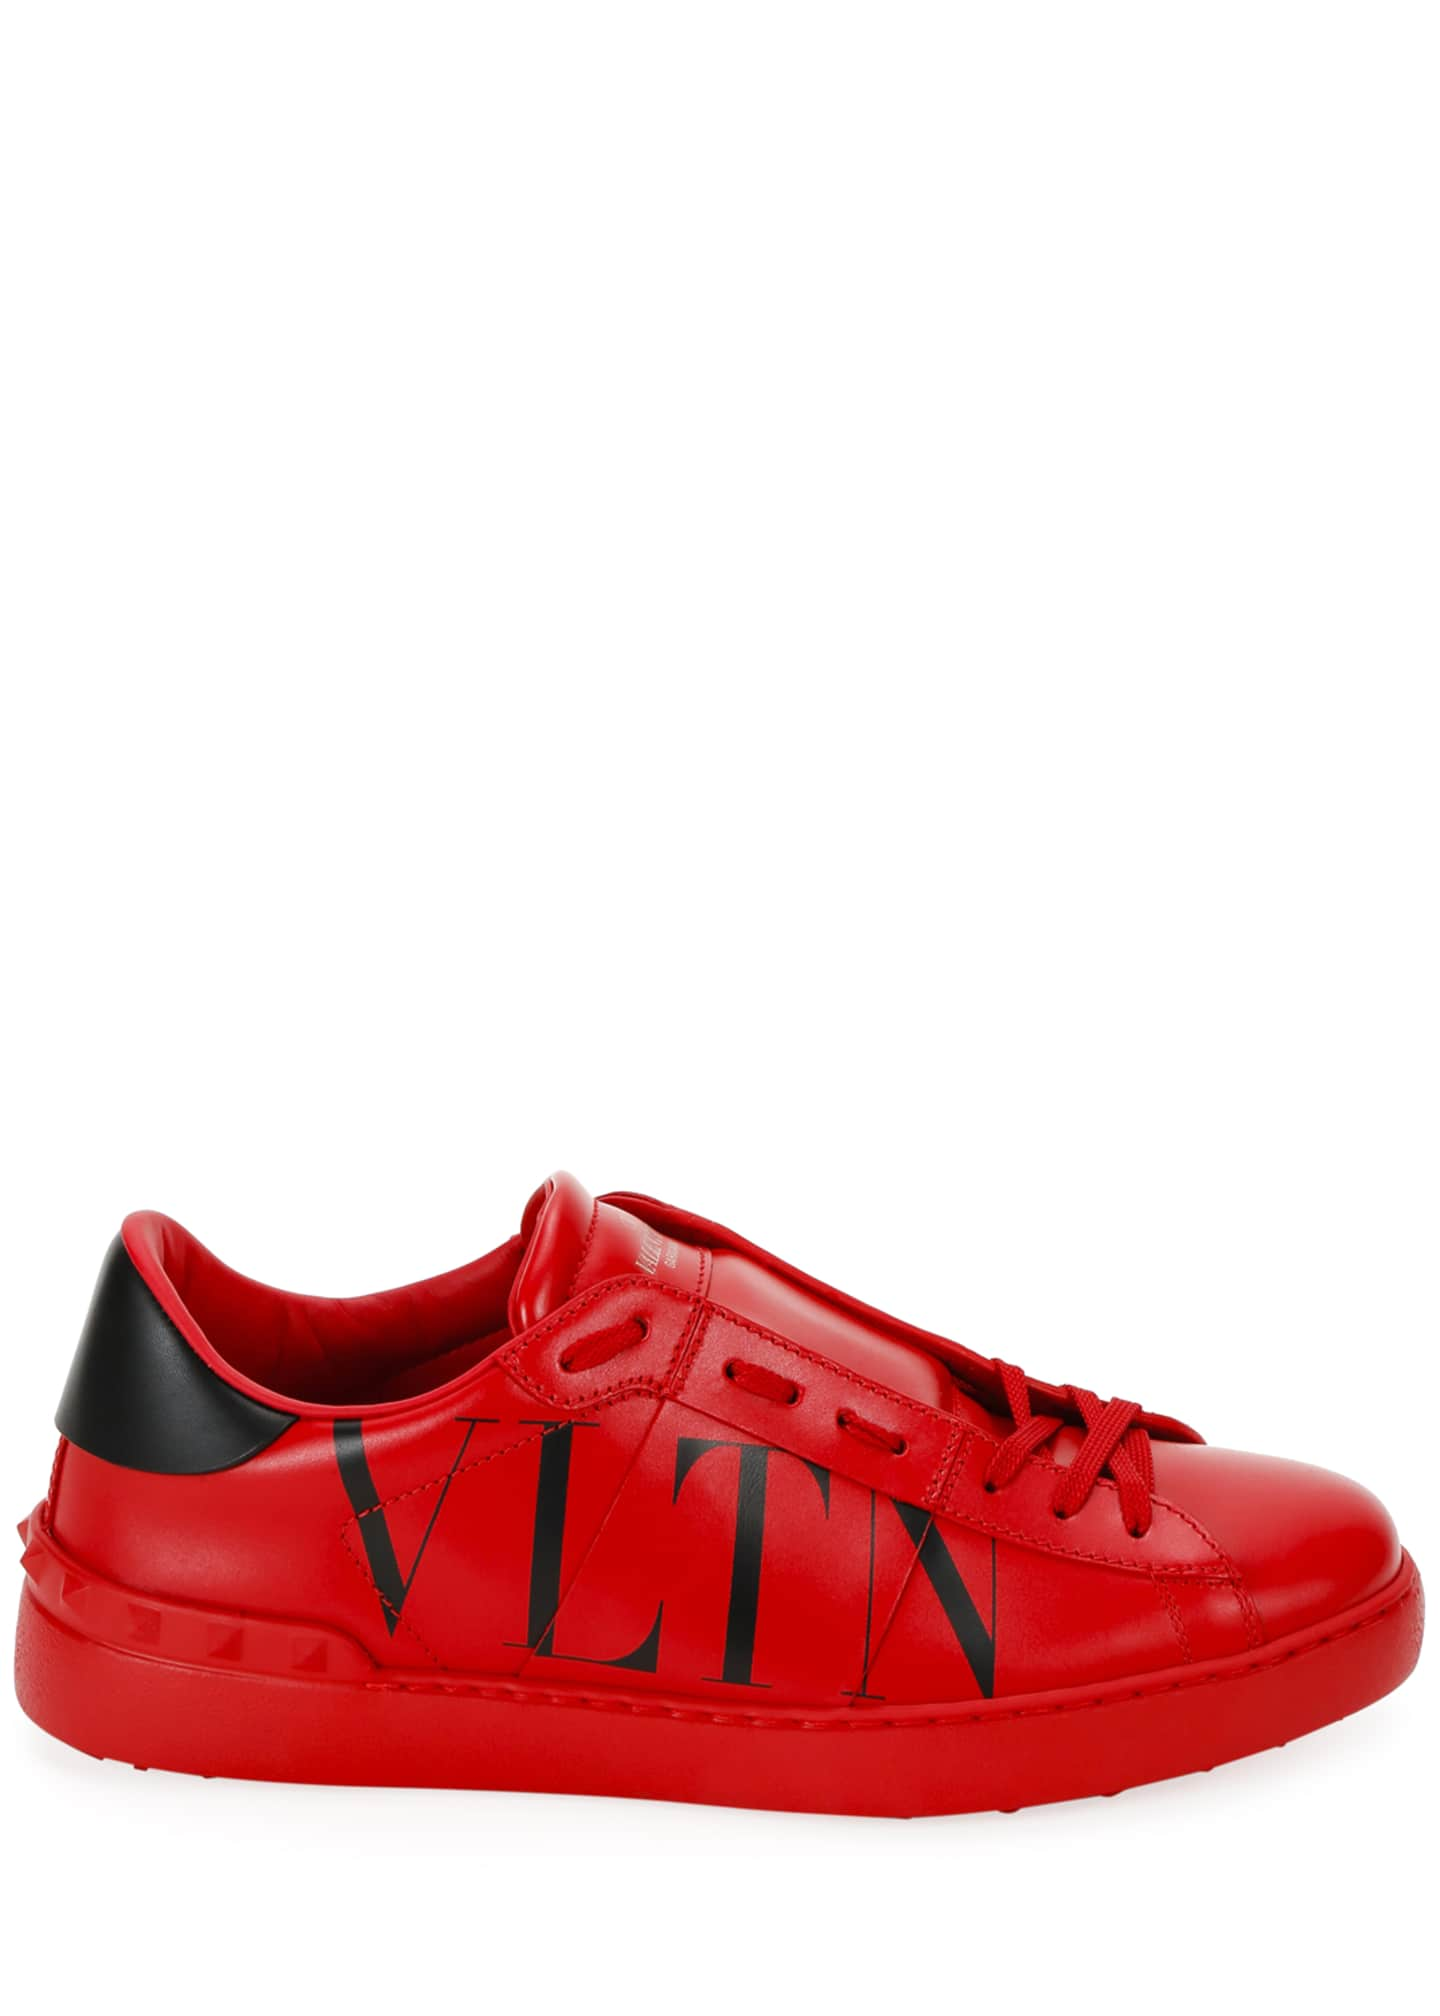 Image 2 of 4: Men's Rockstud Walker VLTN Leather Sneakers